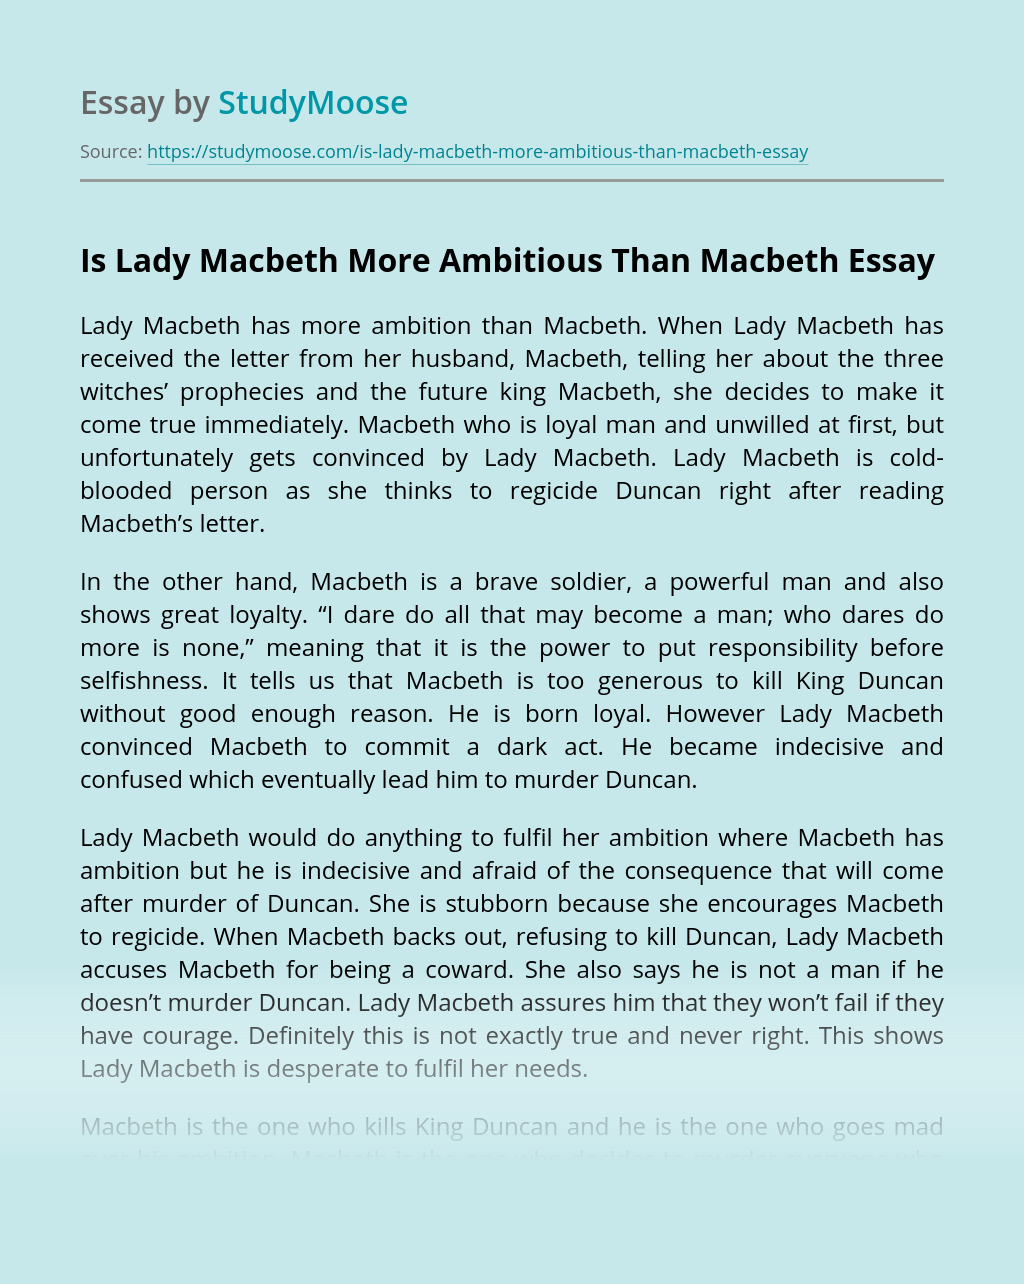 Is Lady Macbeth More Ambitious Than Macbeth